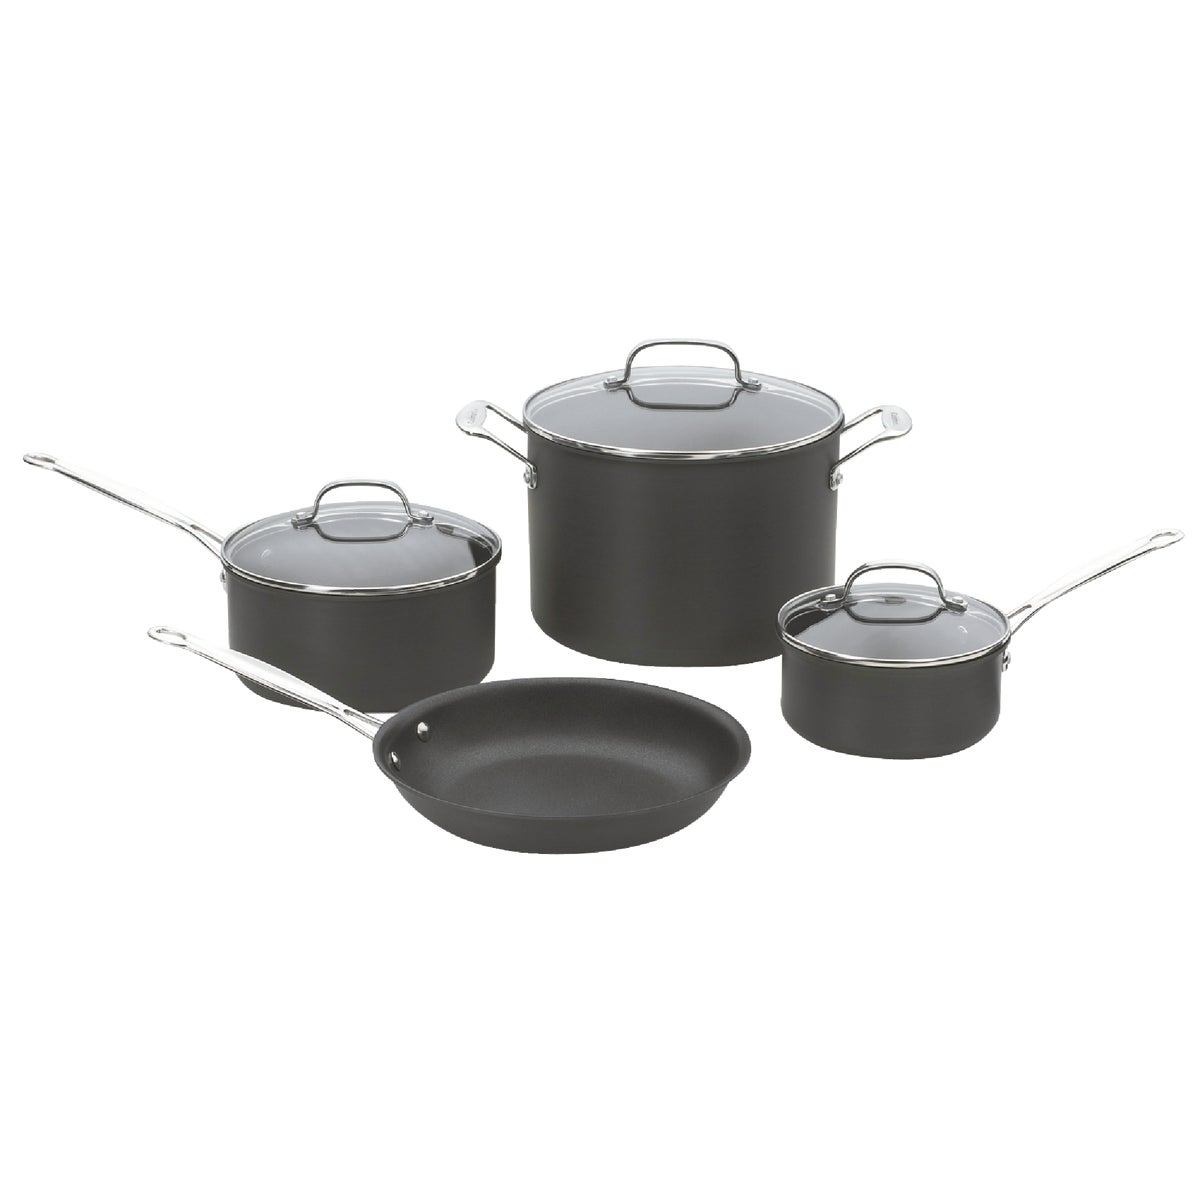 7PC ANODIZED COOKWARE - 66-7 by Cuisinart